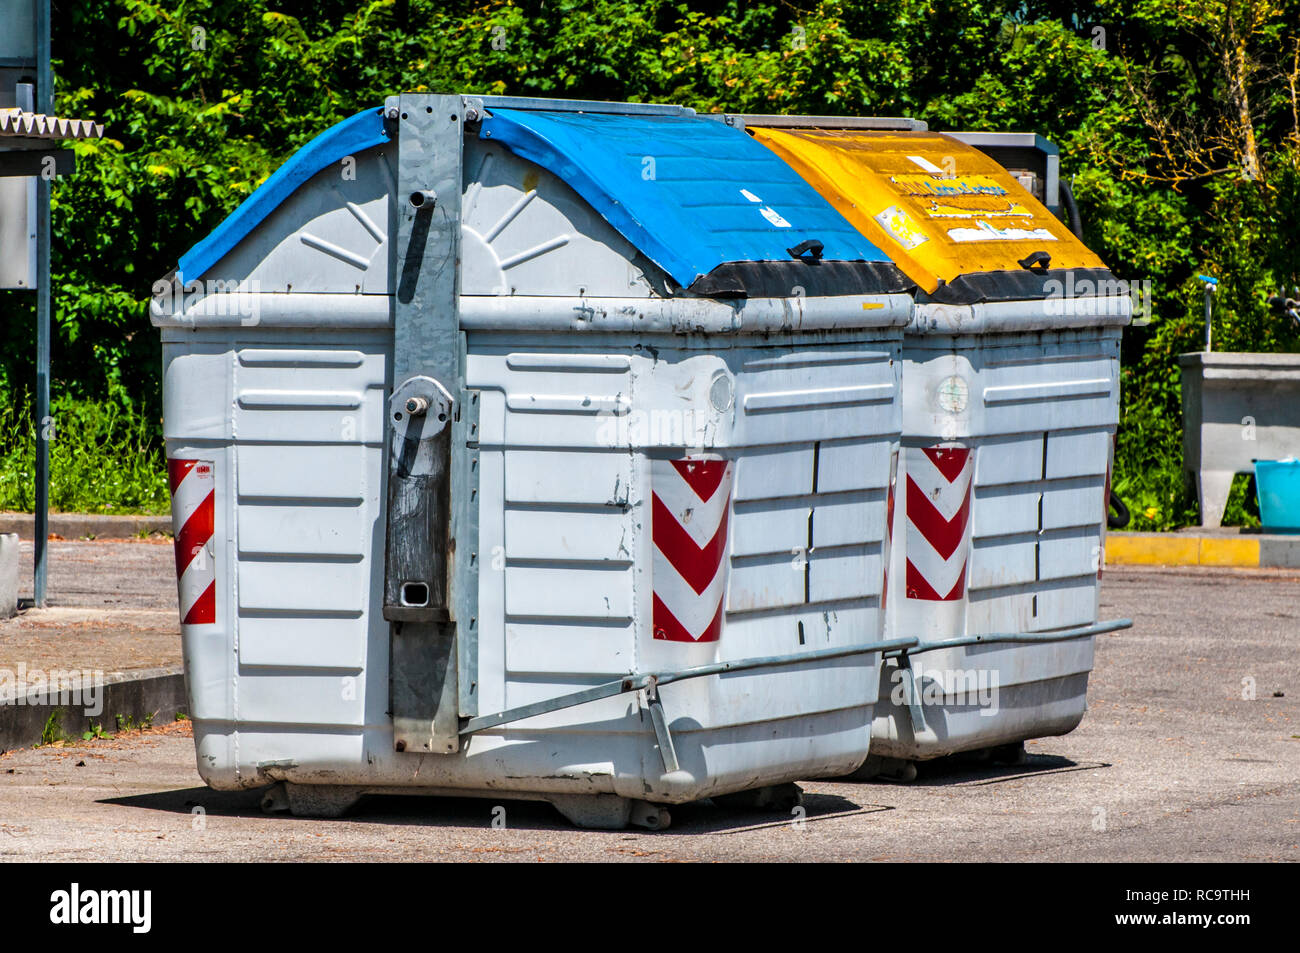 Containers for recycling in an urban street with labels for paper and cardboard and undifferentiated - Stock Image